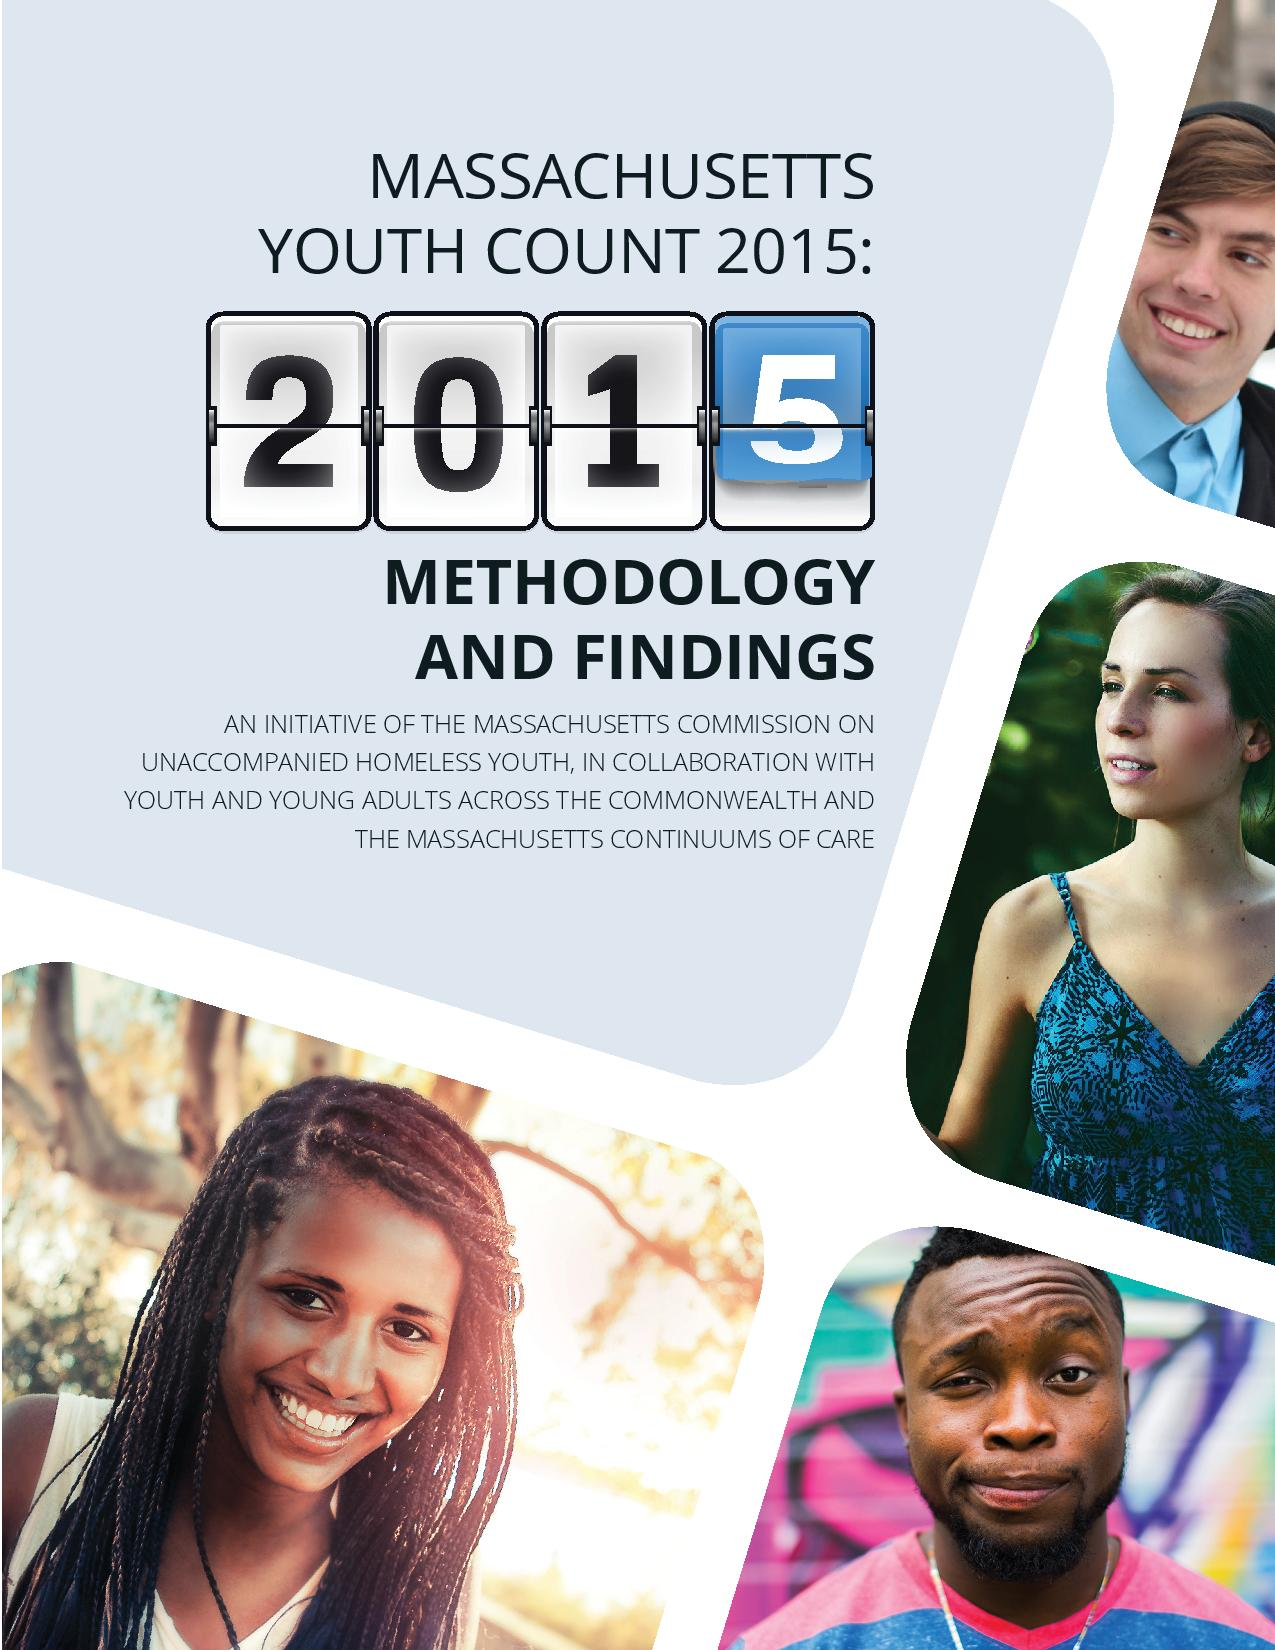 Youth Count 2015 report